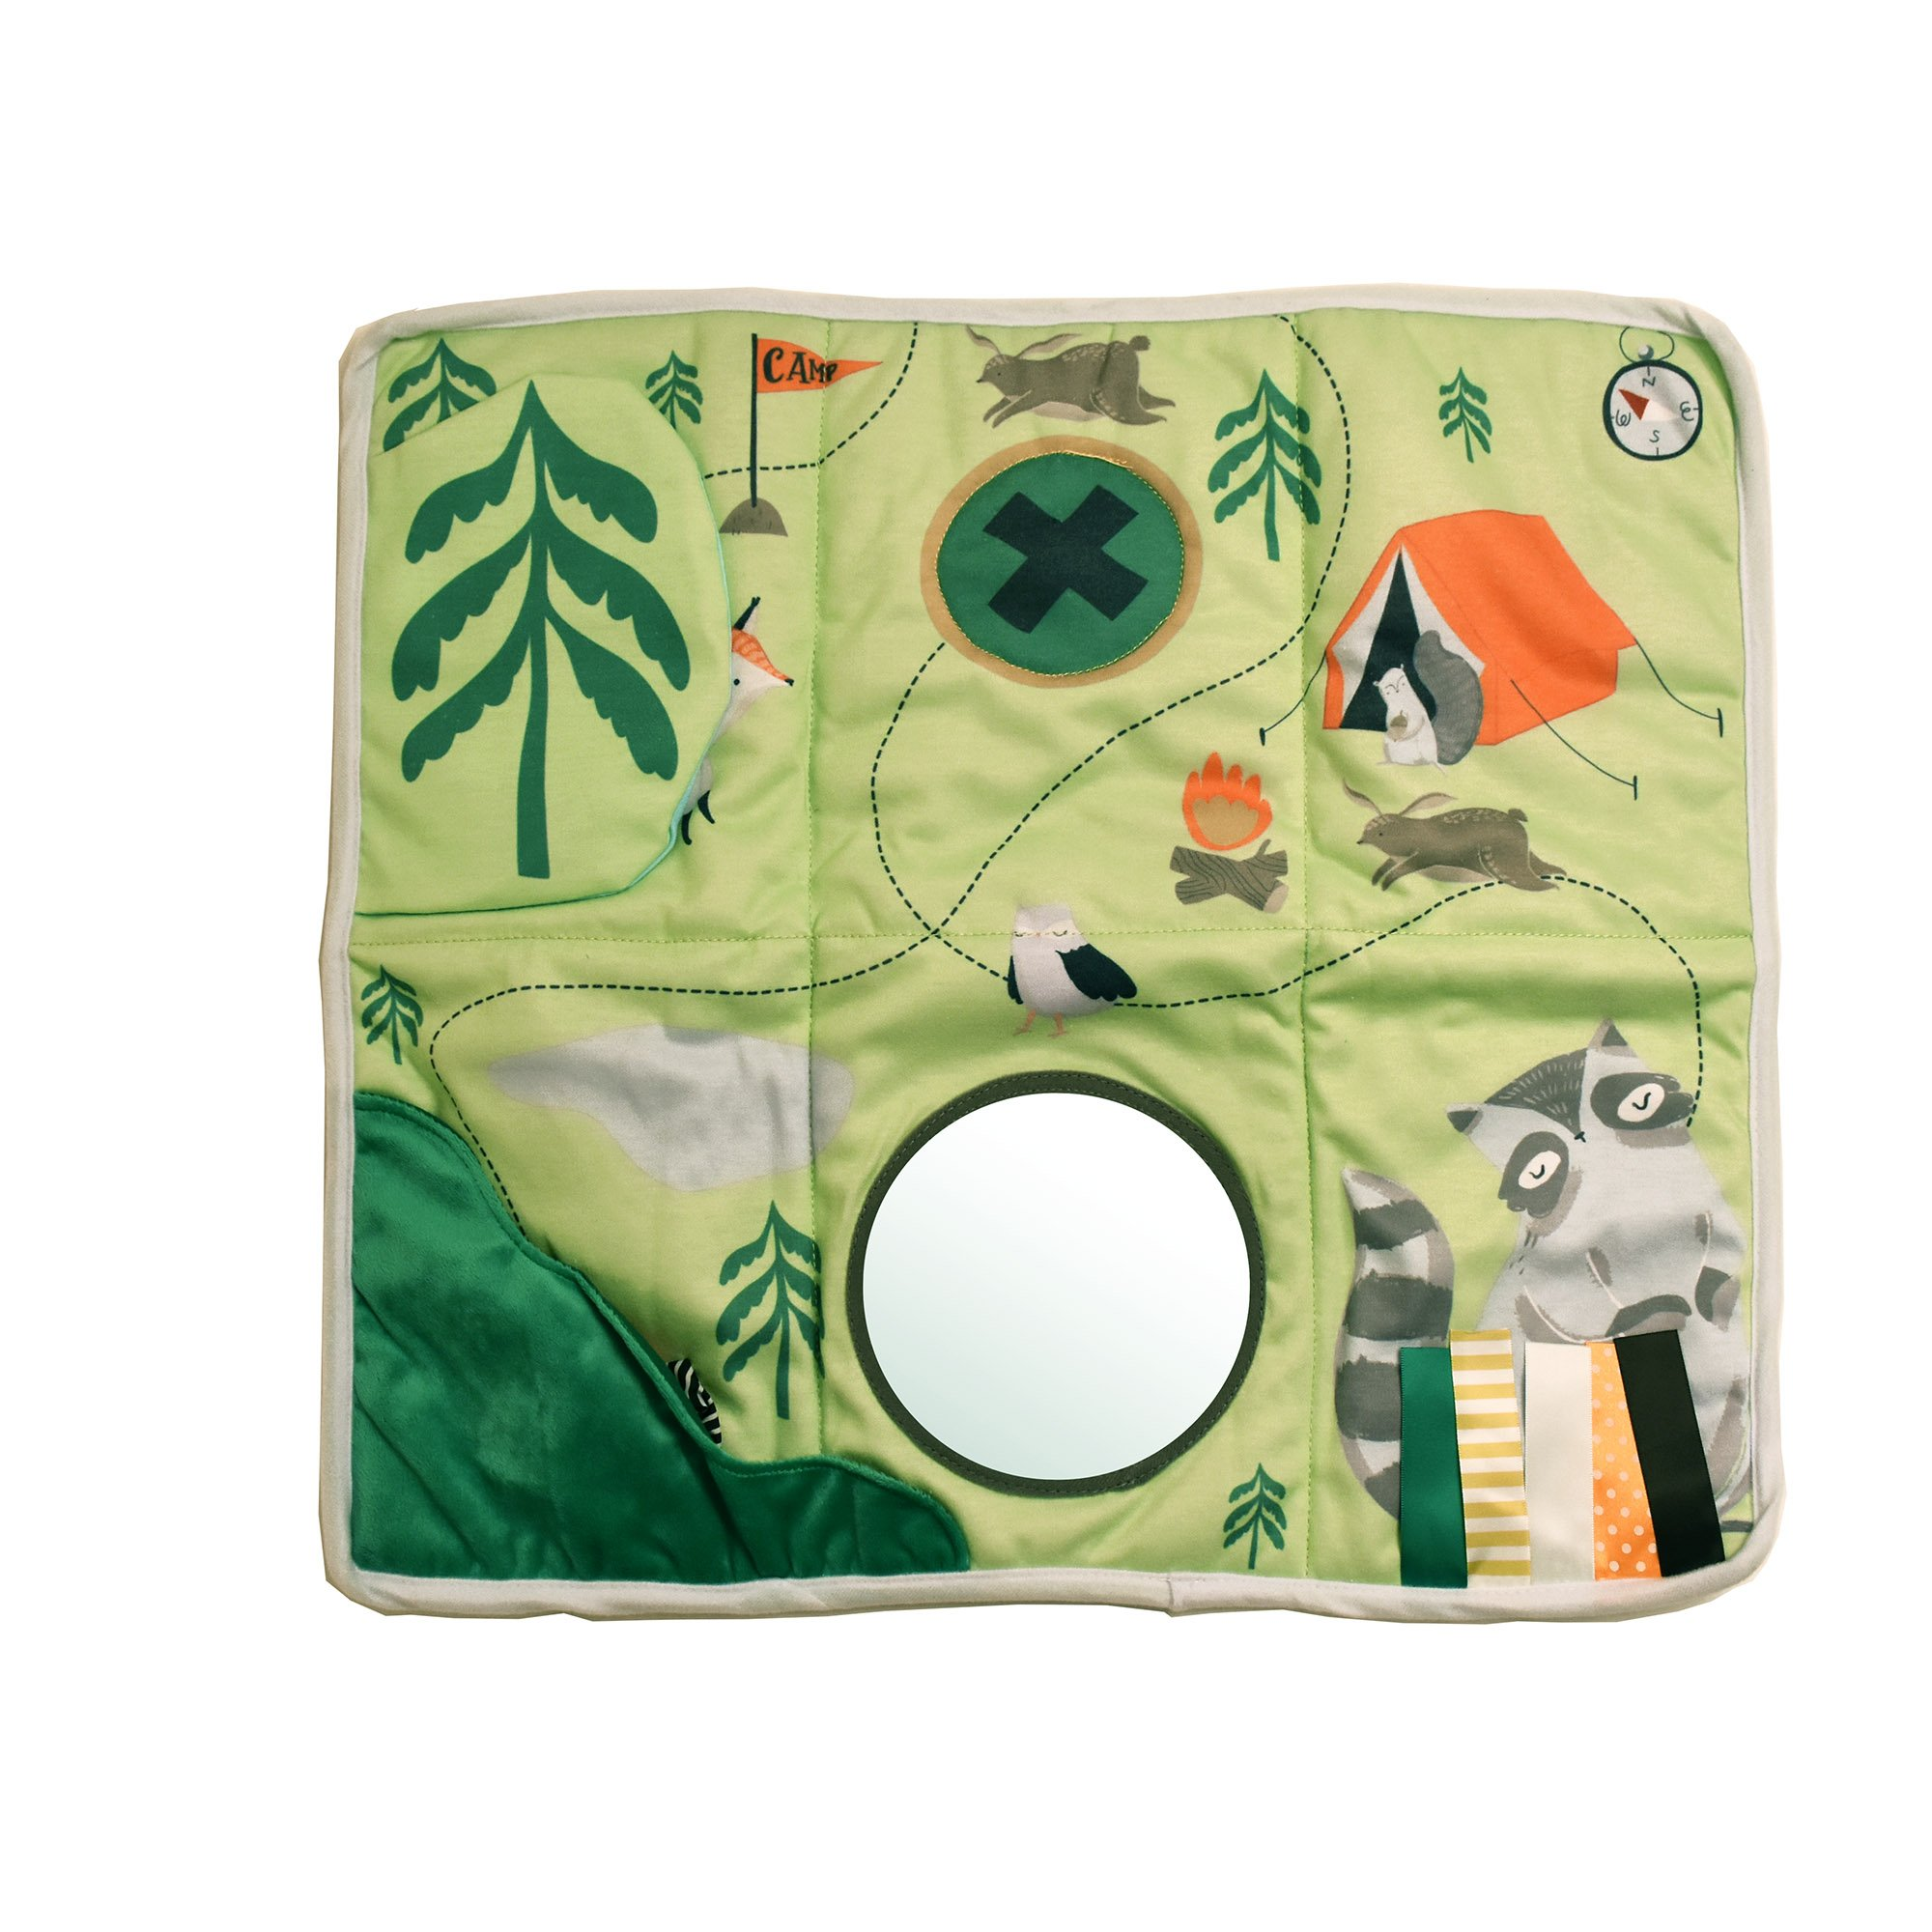 Manhattan Toy Camp Acorn Sensory Activity Play Mat with Tethered Teether Baby Toy